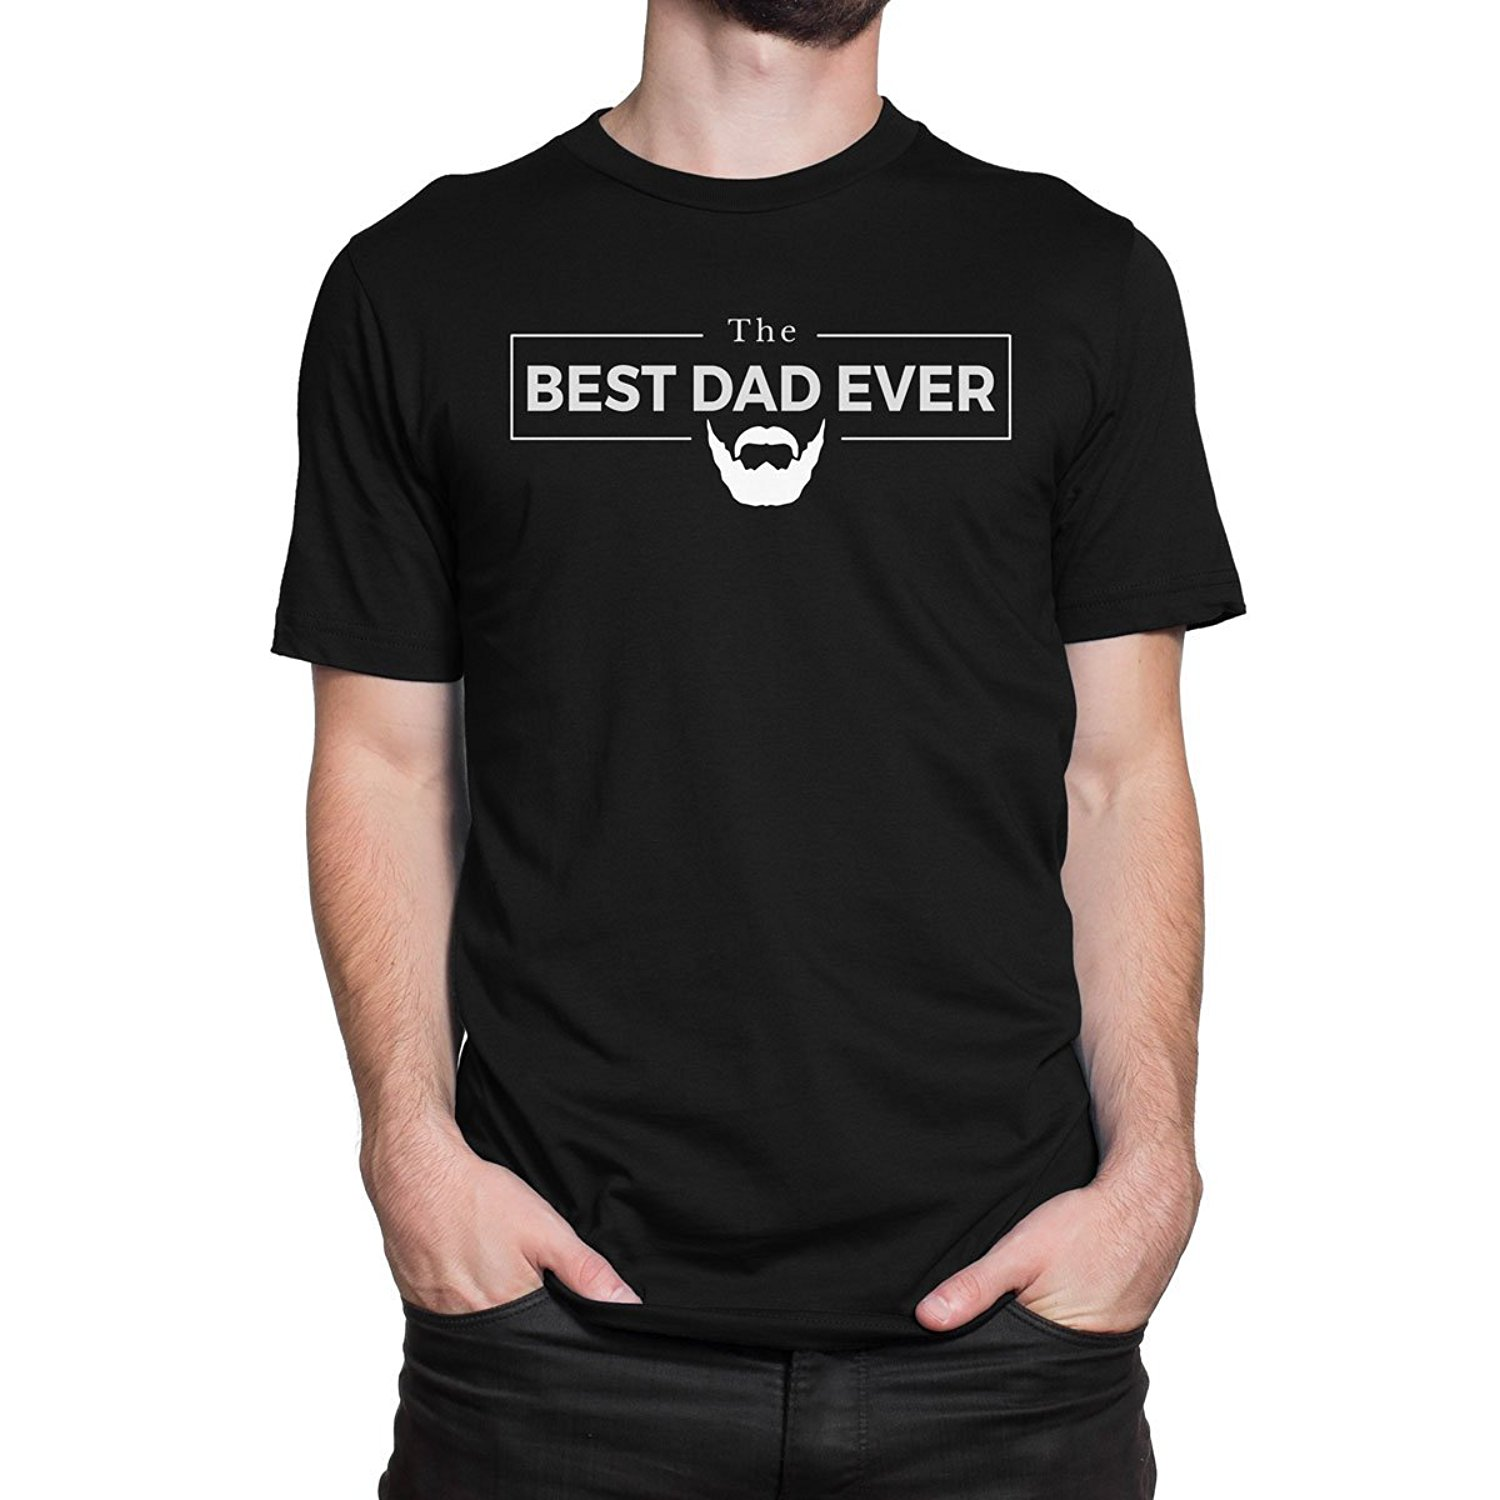 BEST DAD EVER BEARD EDITION MenS PRINT HAUS T-shirt Short Sleeves Cotton Fashion T Shirt Free Shipping